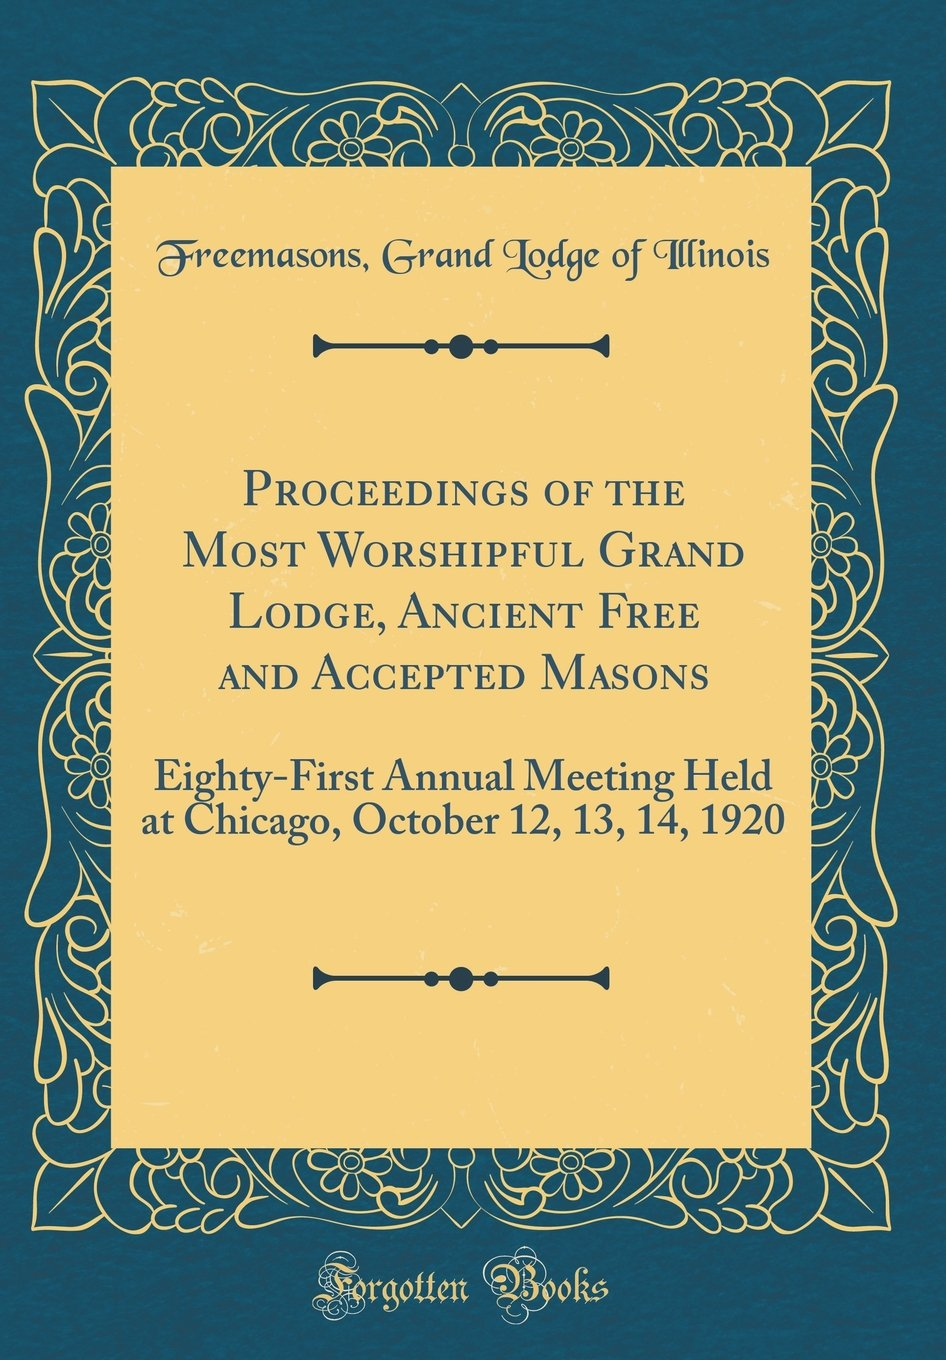 Read Online Proceedings of the Most Worshipful Grand Lodge, Ancient Free and Accepted Masons: Eighty-First Annual Meeting Held at Chicago, October 12, 13, 14, 1920 (Classic Reprint) pdf